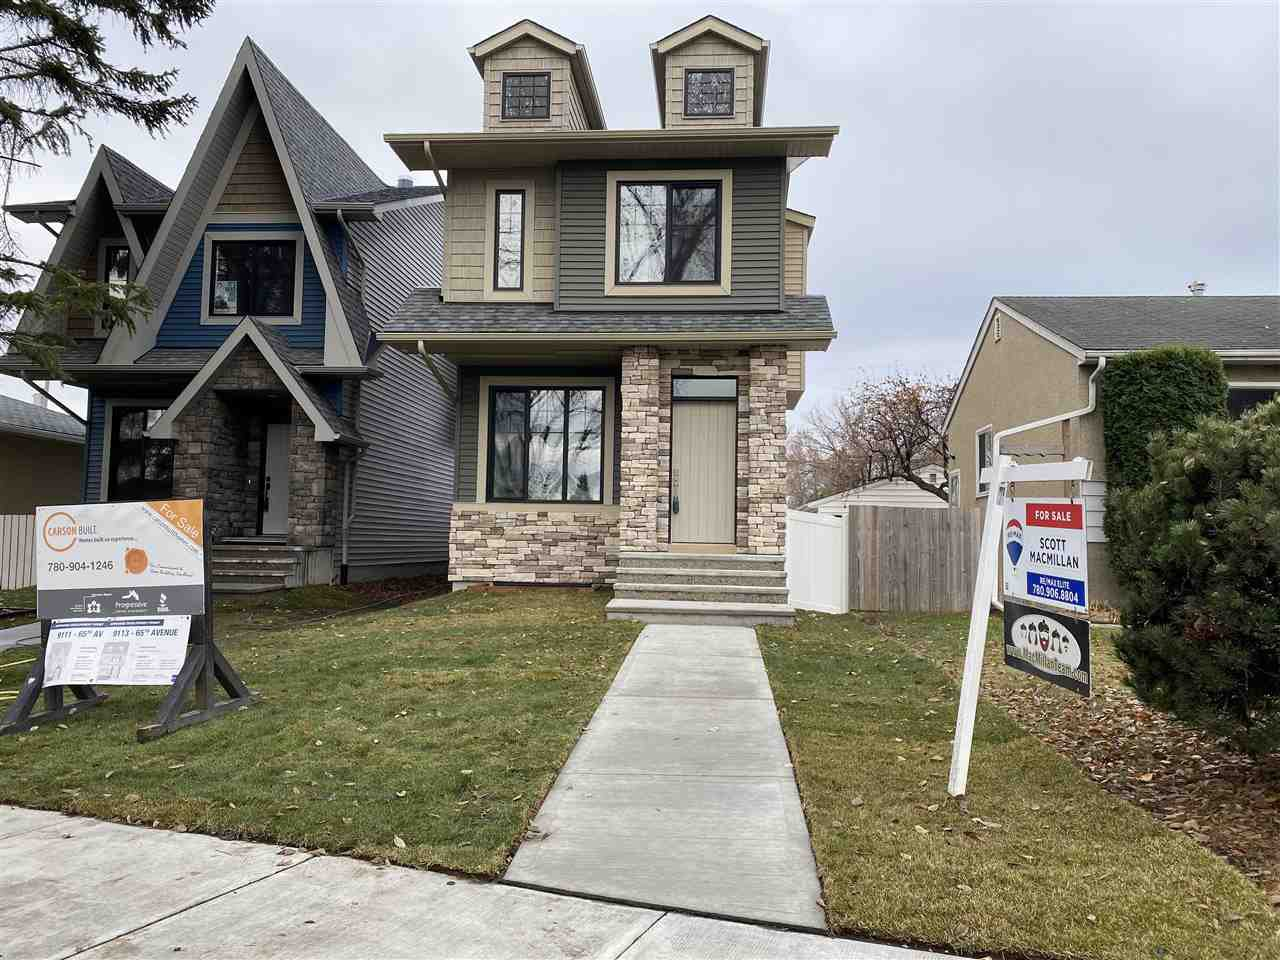 Main Photo: 9113 65 Avenue in Edmonton: Zone 17 House for sale : MLS®# E4221418